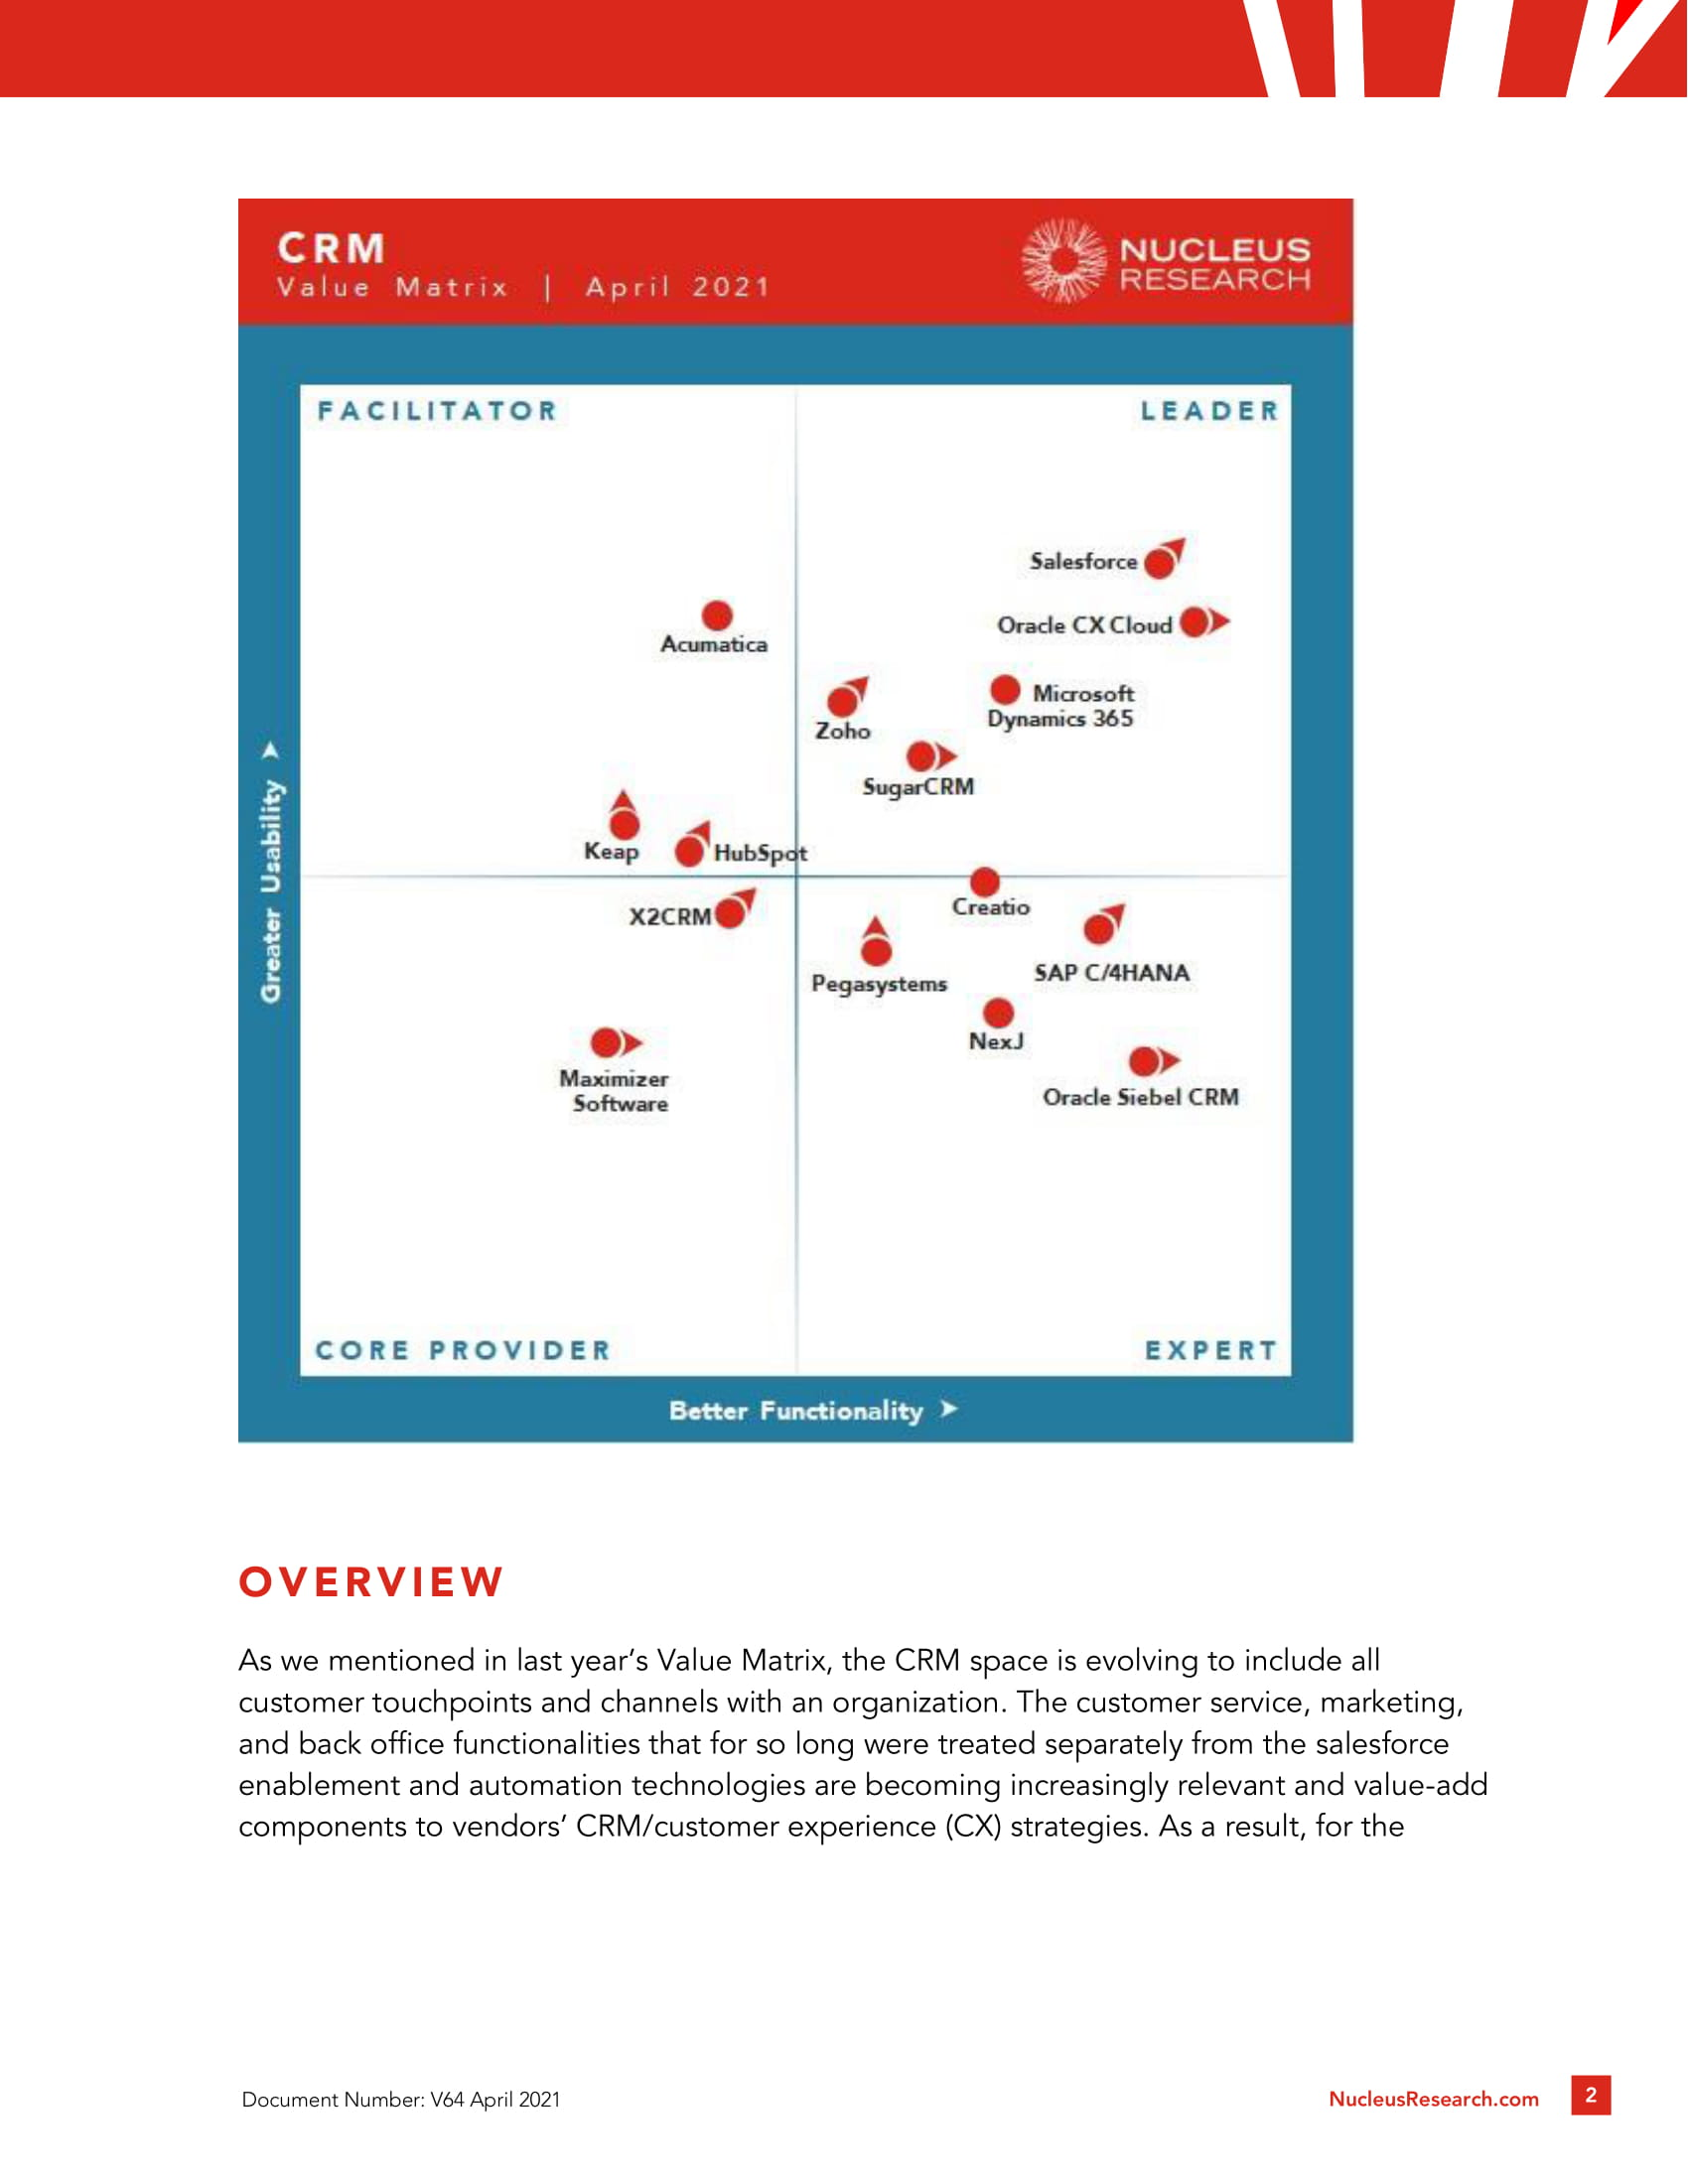 Cloud CRM Solutions: See How Top Vendors Compare, page 1